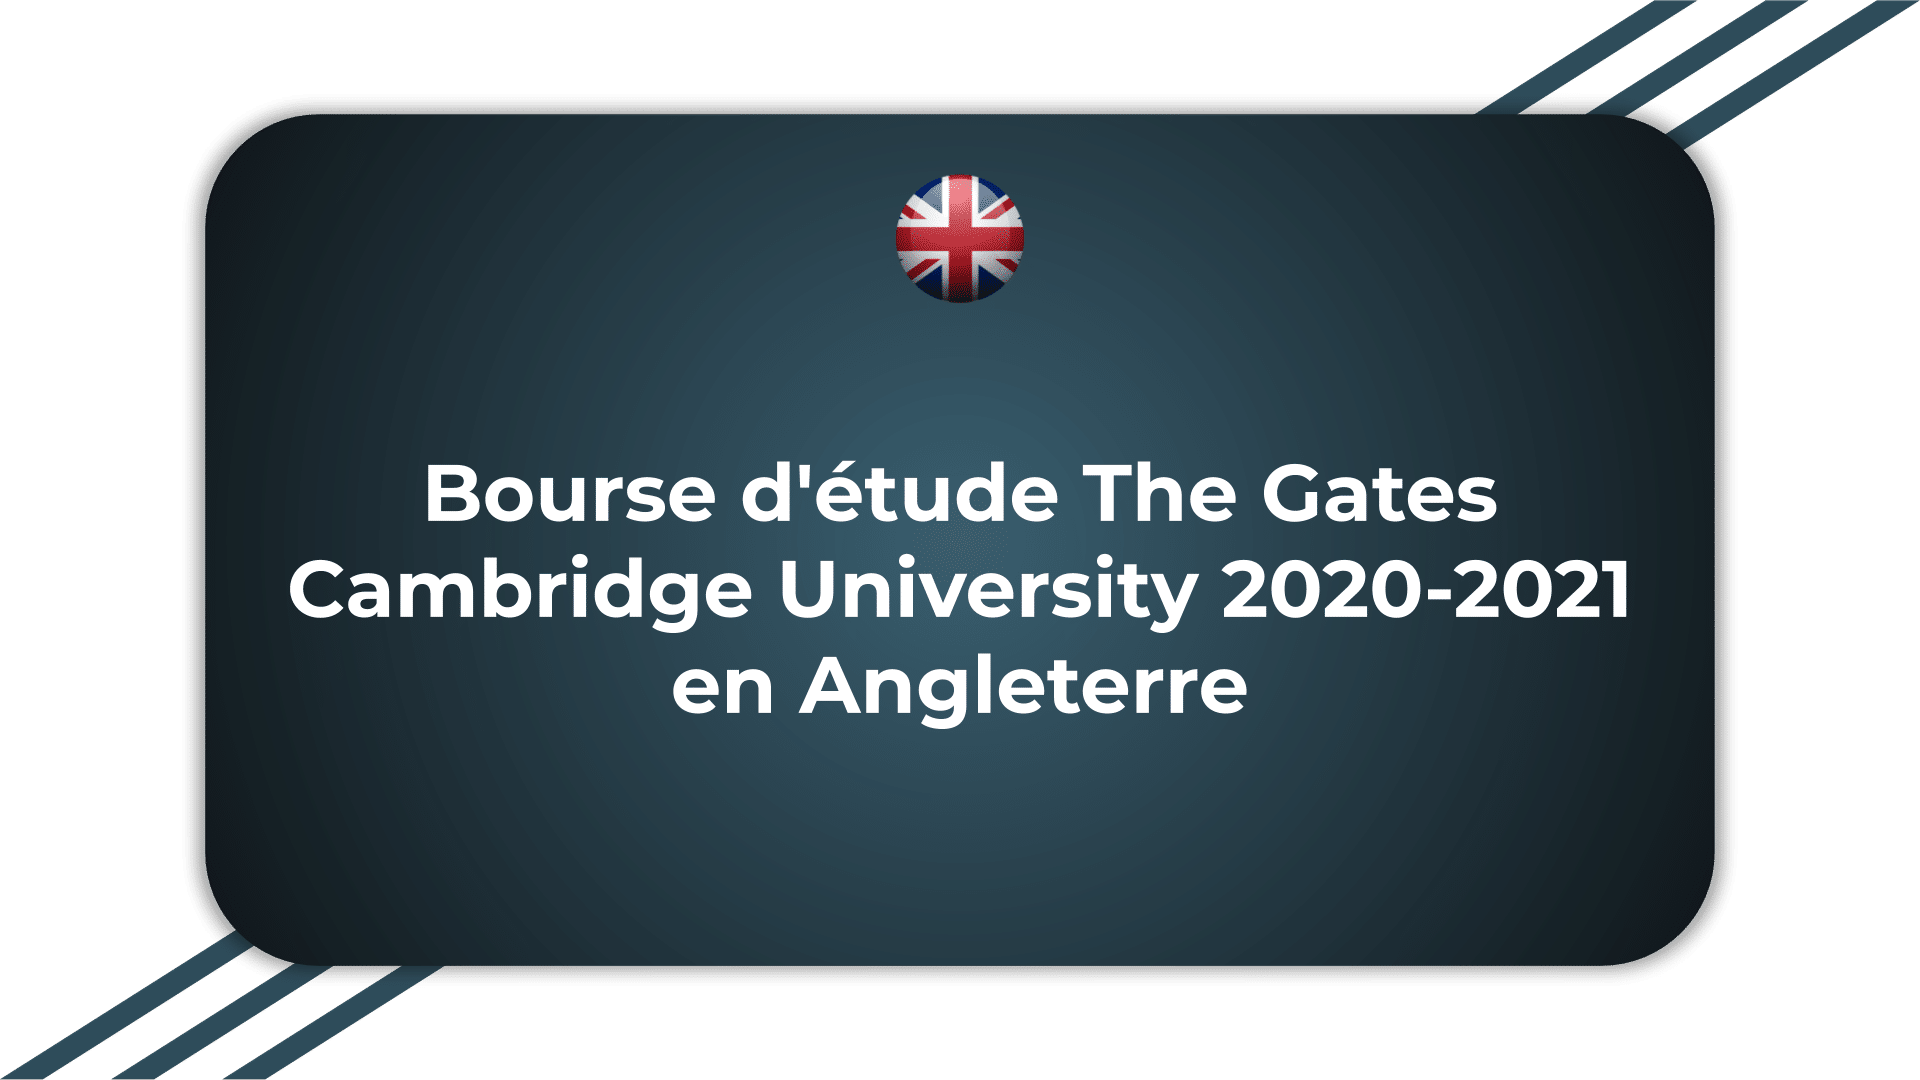 Bourse d'étude The Gates Cambridge University